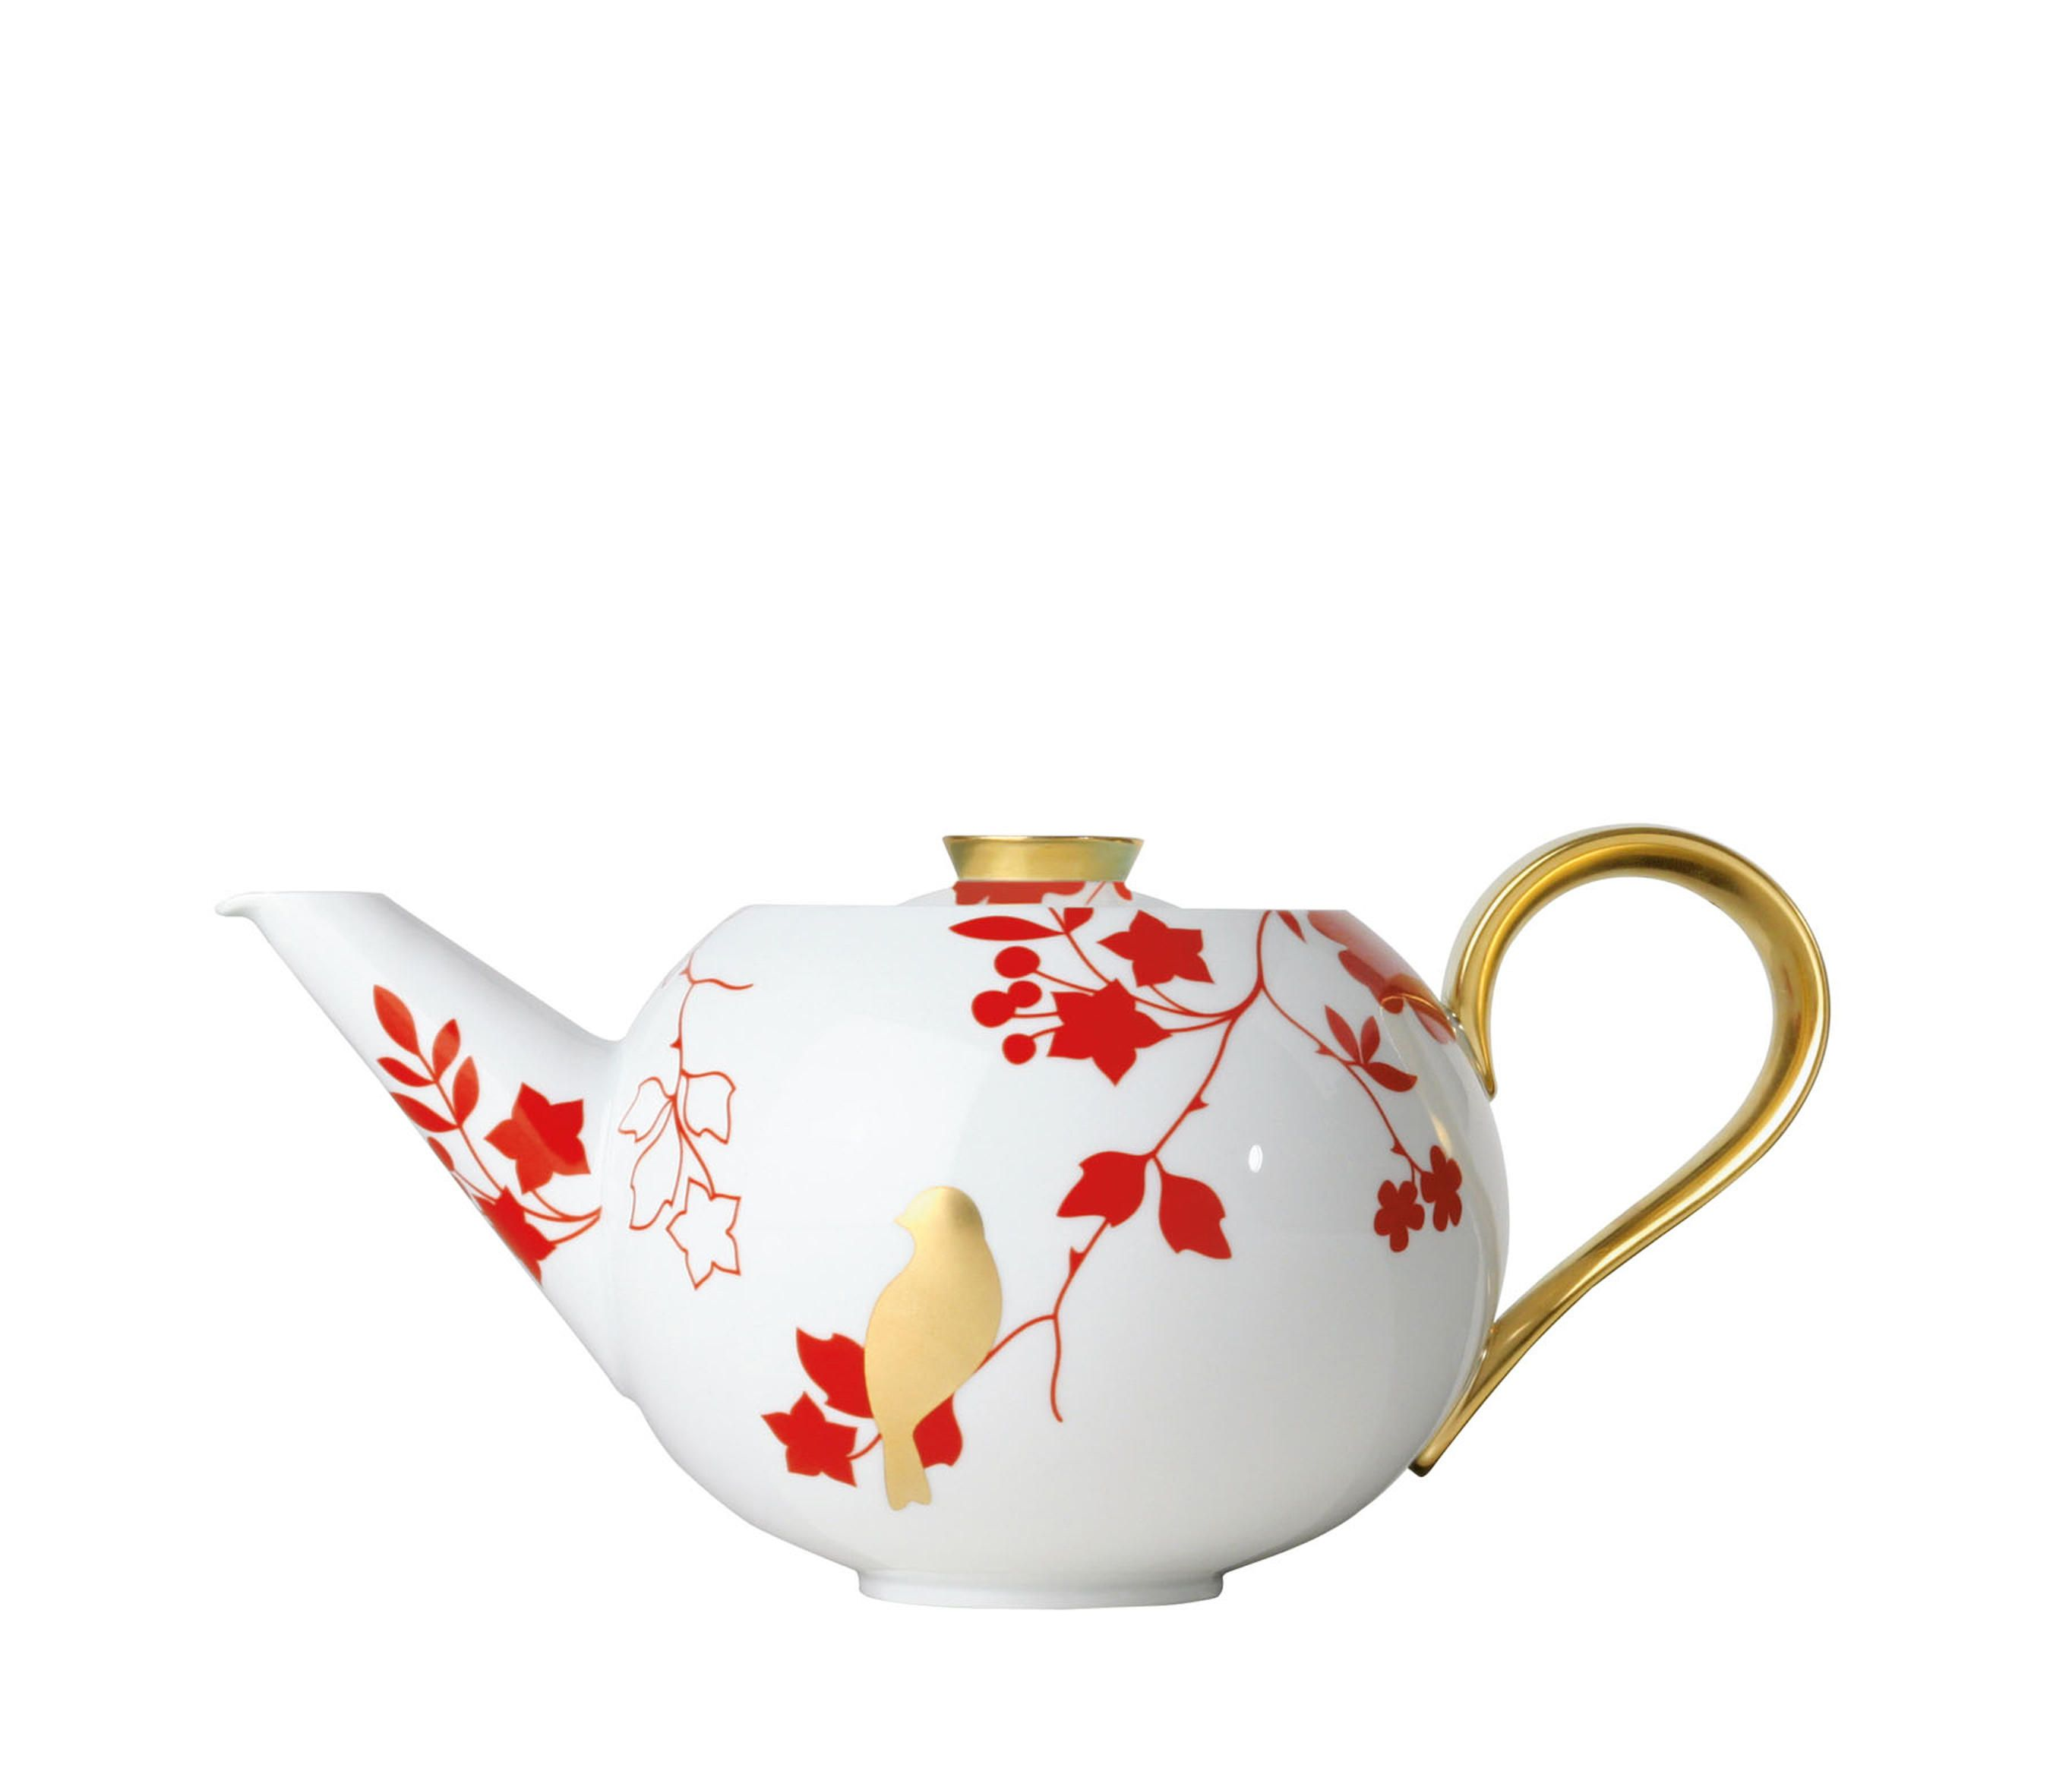 MY CHINA! EMPEROR`S GARDEN Teapot by FÜRSTENBERG